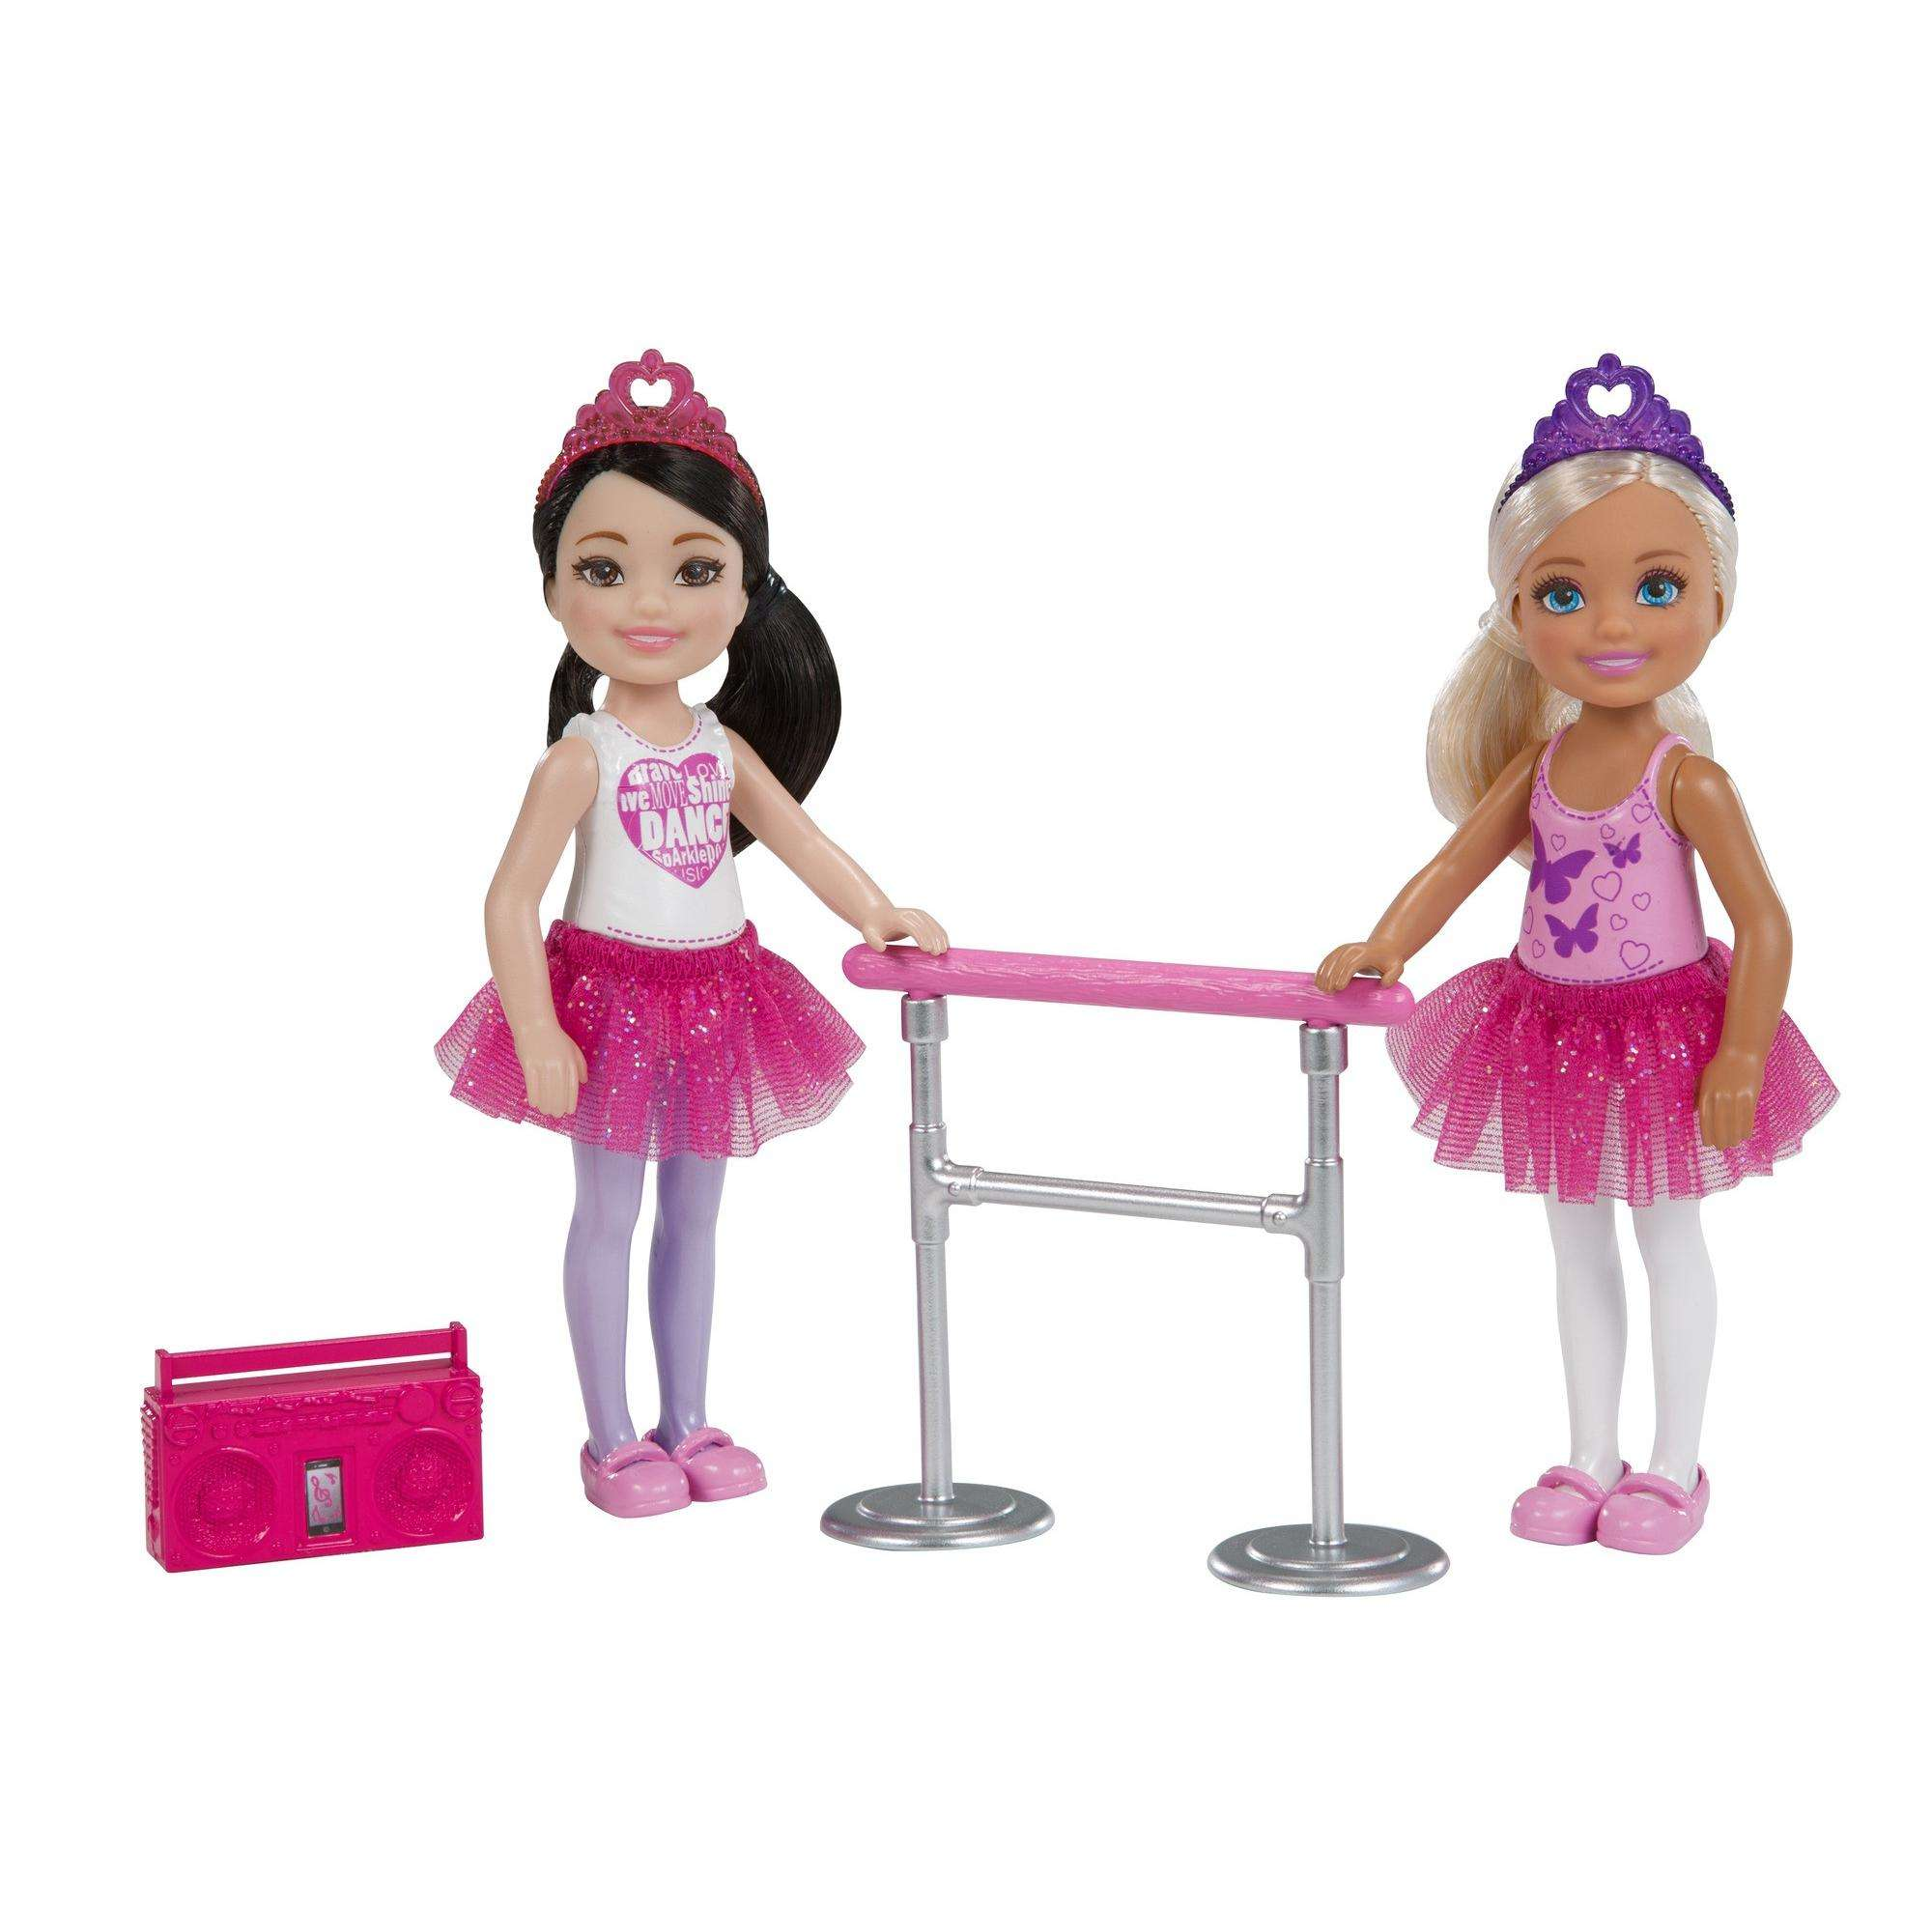 Barbie Chelsea Dolls Dance 2 Pack